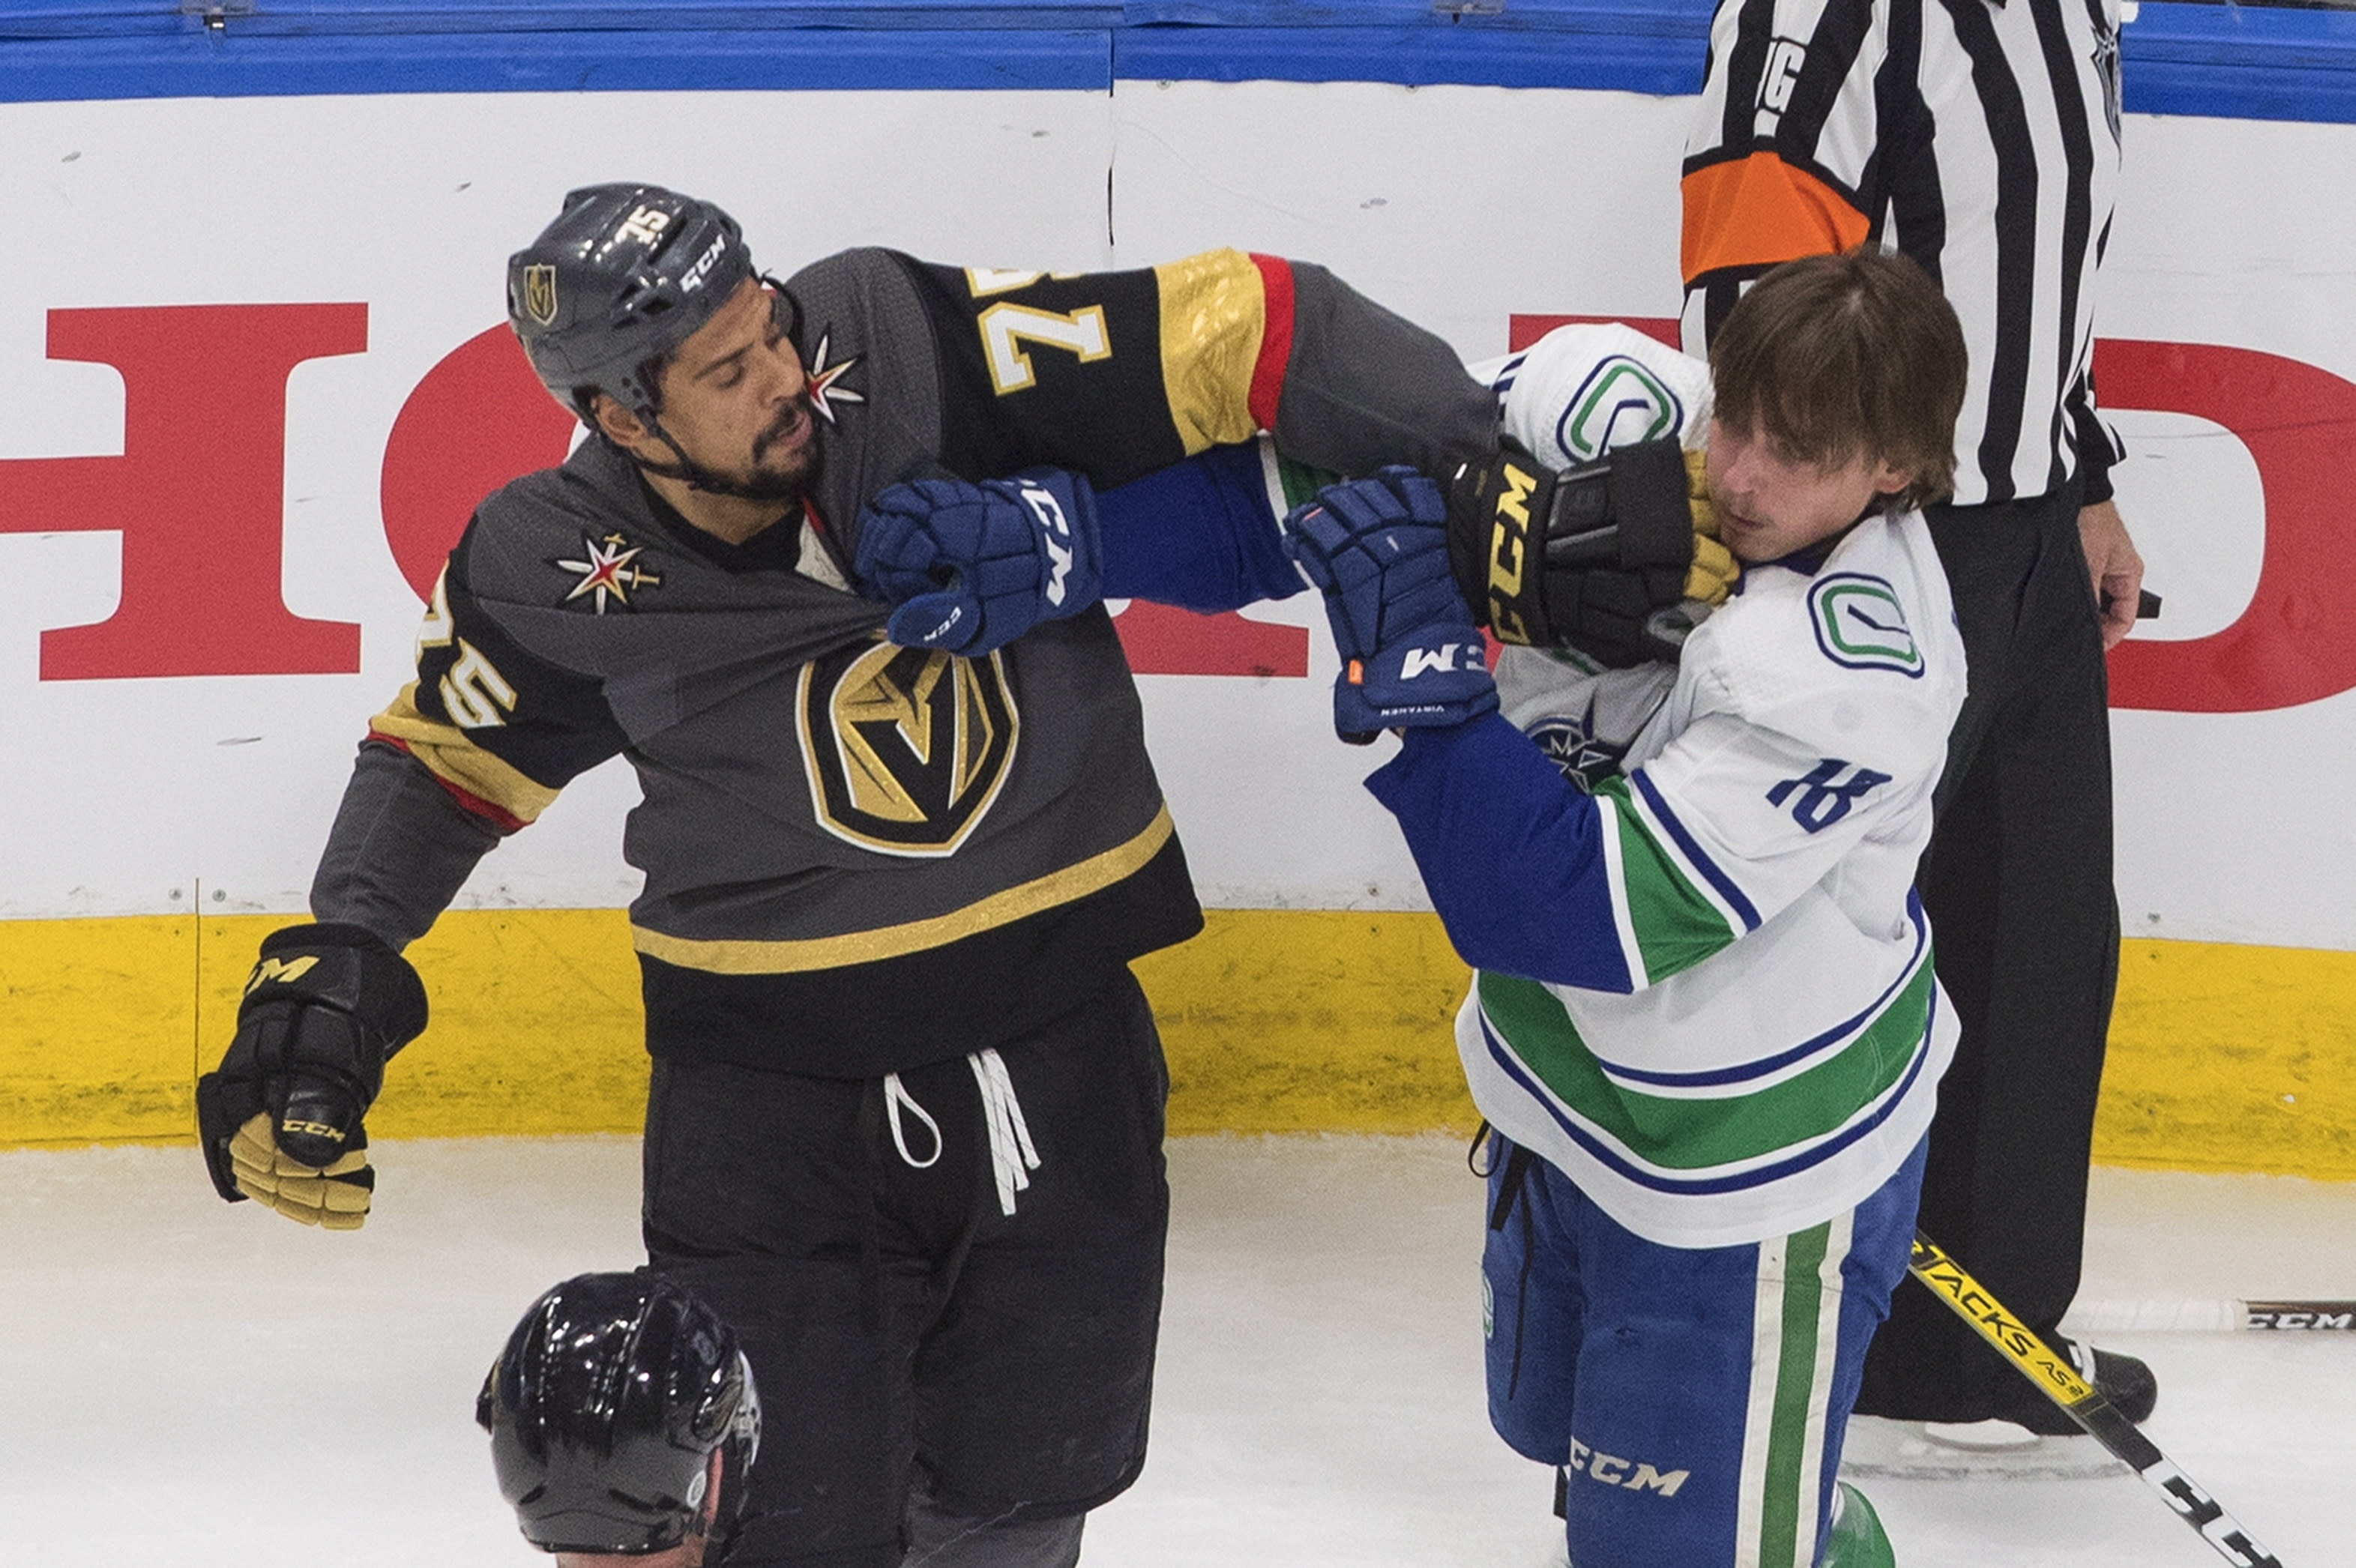 Vancouver Canucks' Jake Virtanen (18) and Vegas Golden Knights' Ryan Reaves (75) rough it up during the first period of Game 7 of an NHL hockey second-round playoff series, Friday, Sept. 4, 2020, in Edmonton, Alberta. (Jason Franson/The Canadian Press via AP)